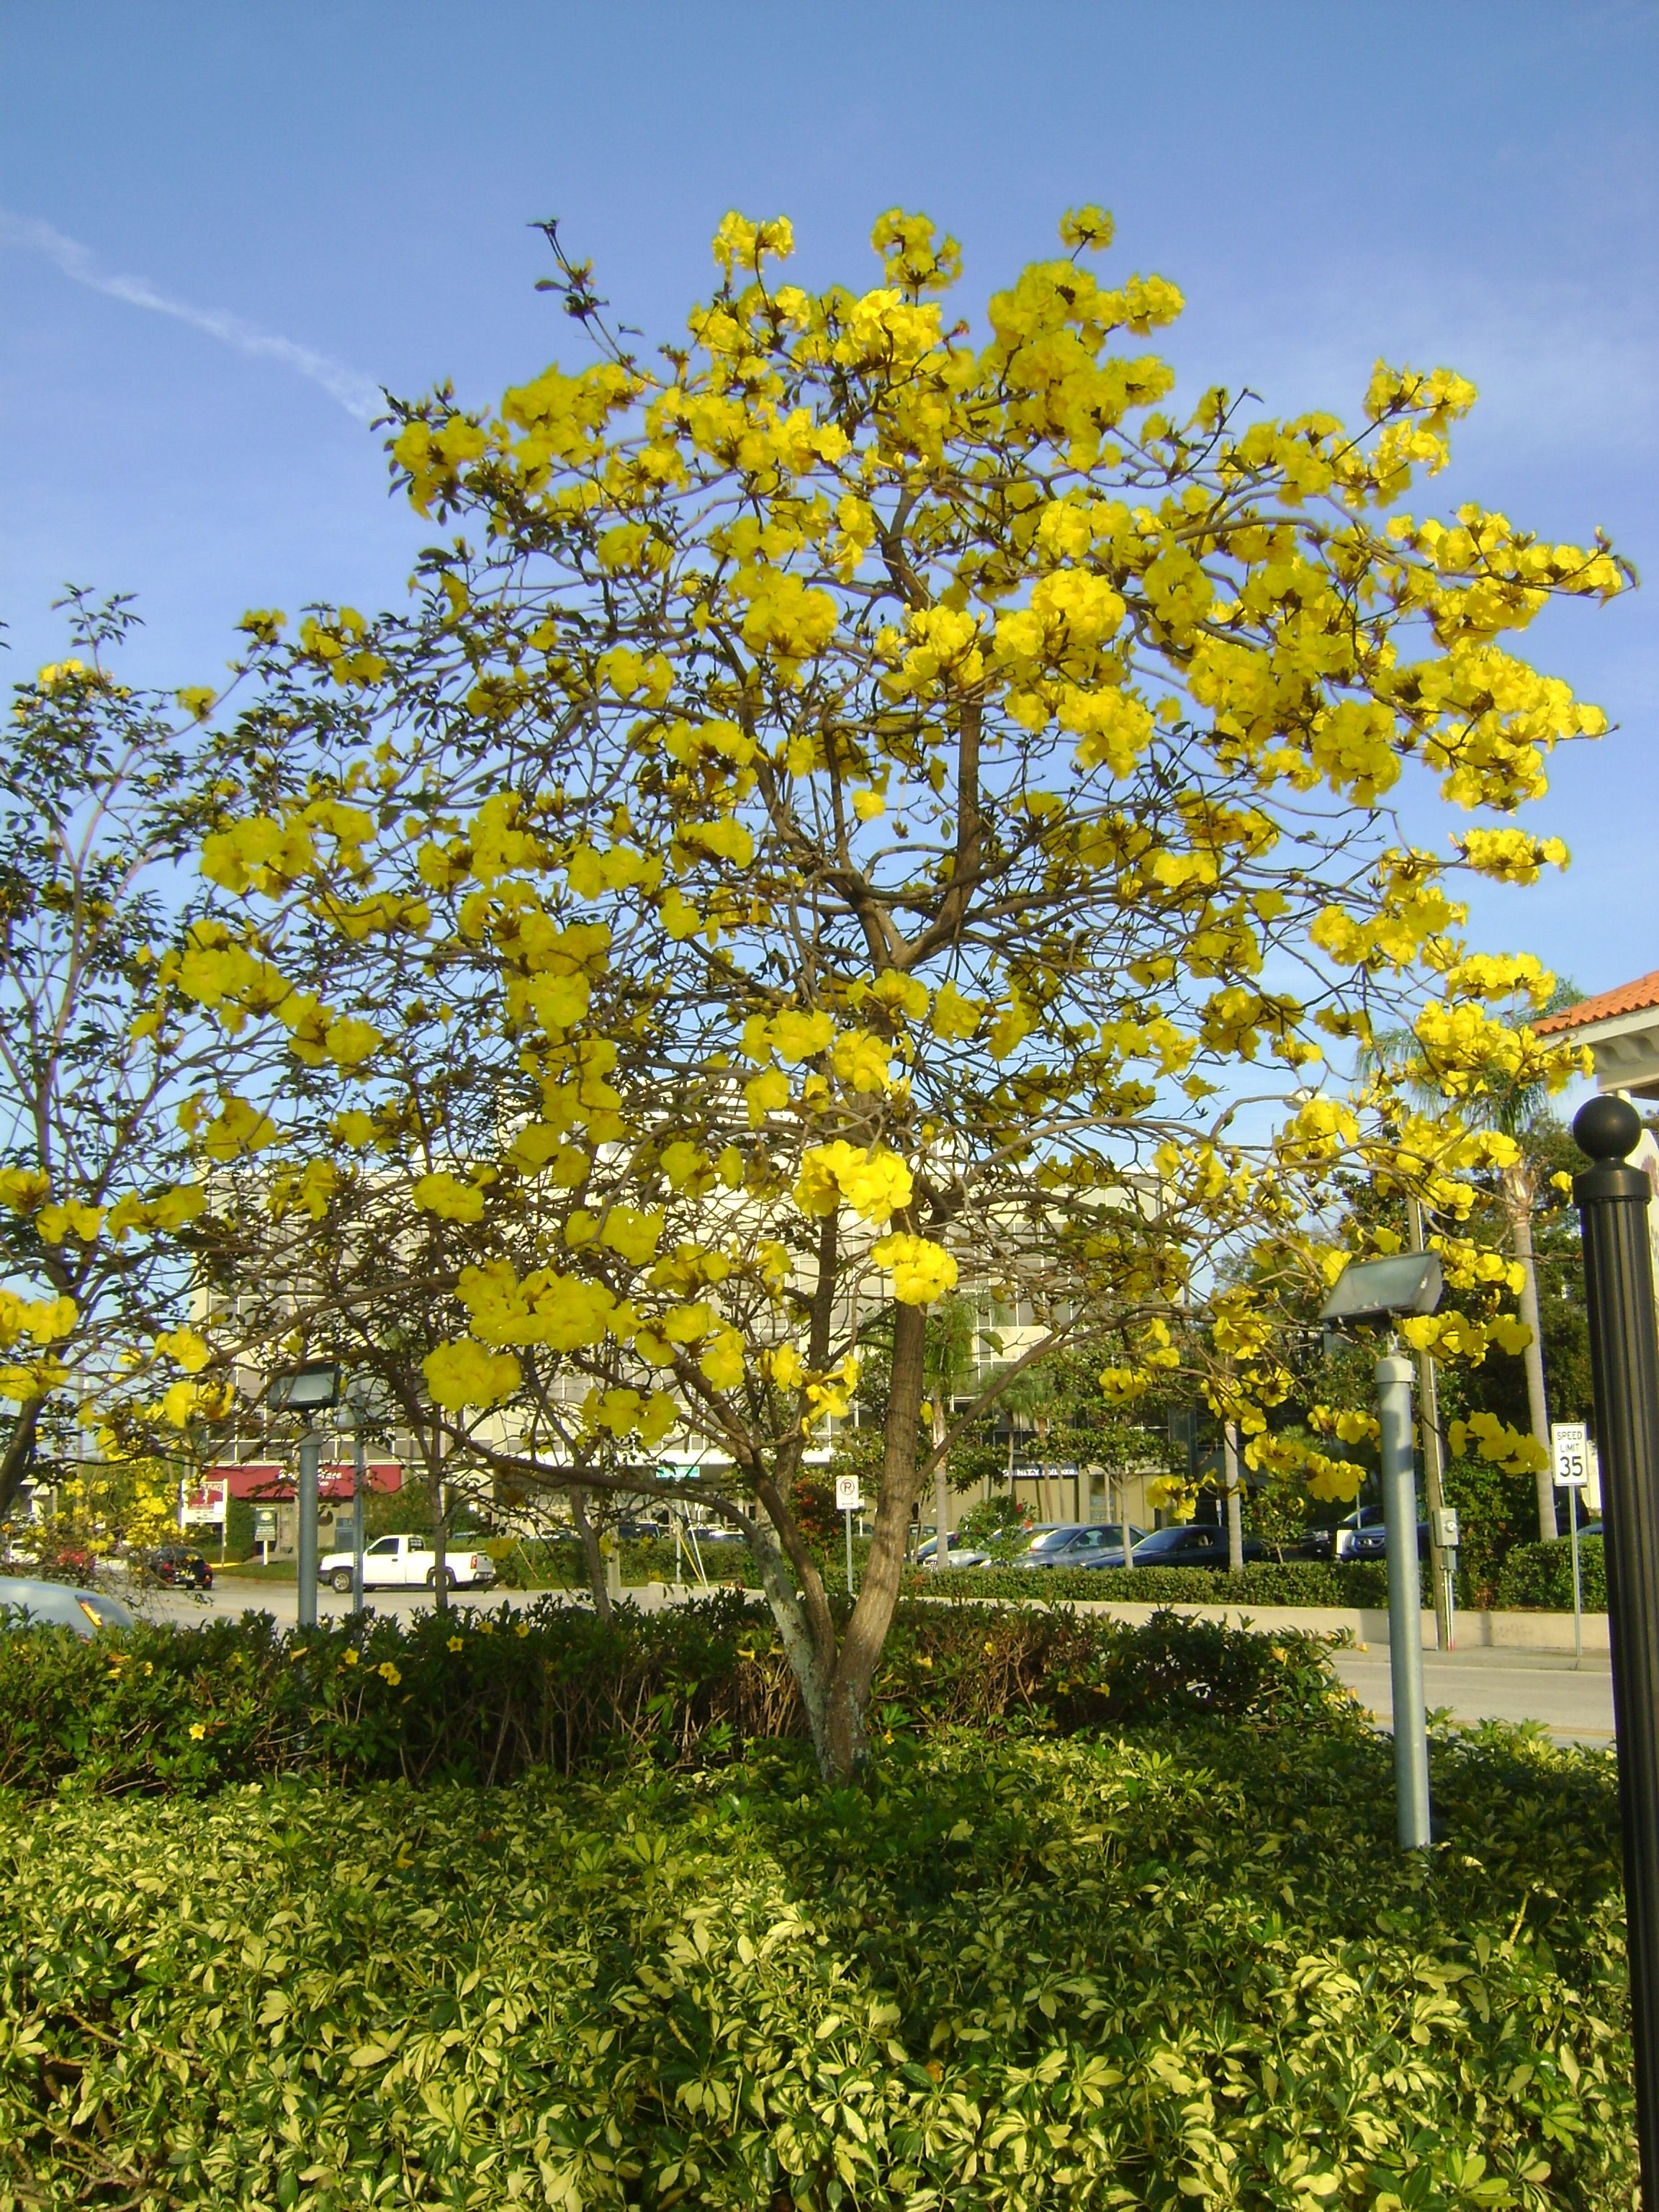 Florida tree images and names yellow tabebuia click to enlarge florida tree images and names yellow tabebuia click to enlarge mightylinksfo Gallery